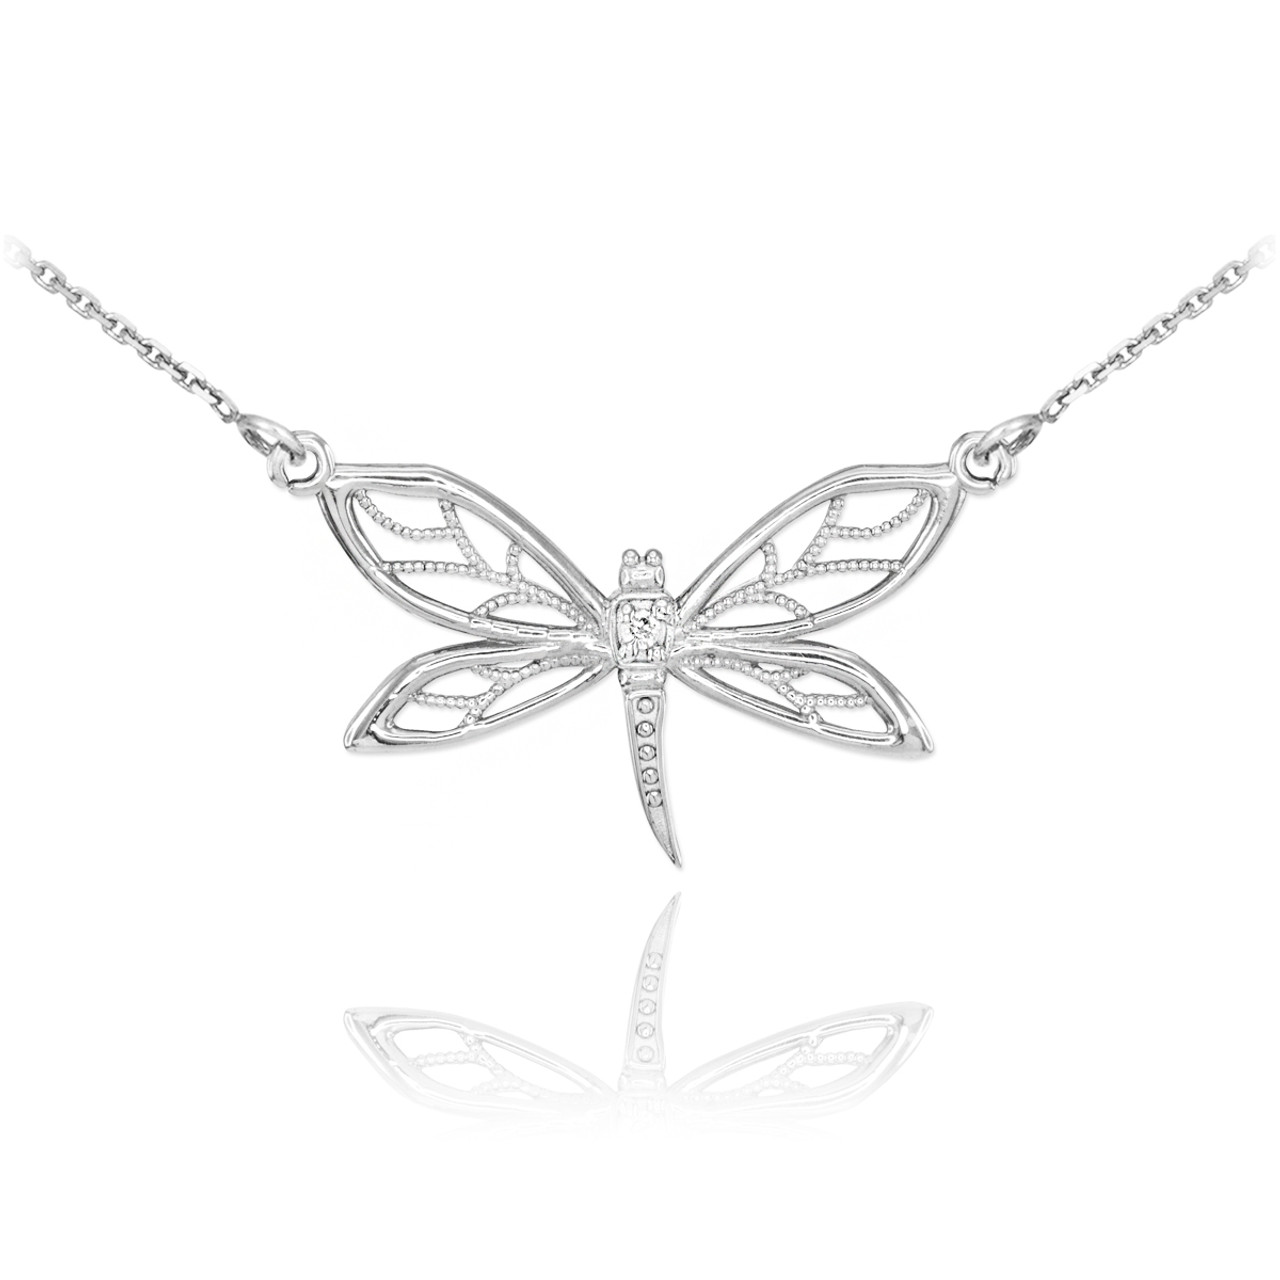 5e7ed19f0 14k White Gold Diamond Dragonfly Necklace | Dragonfly Necklaces